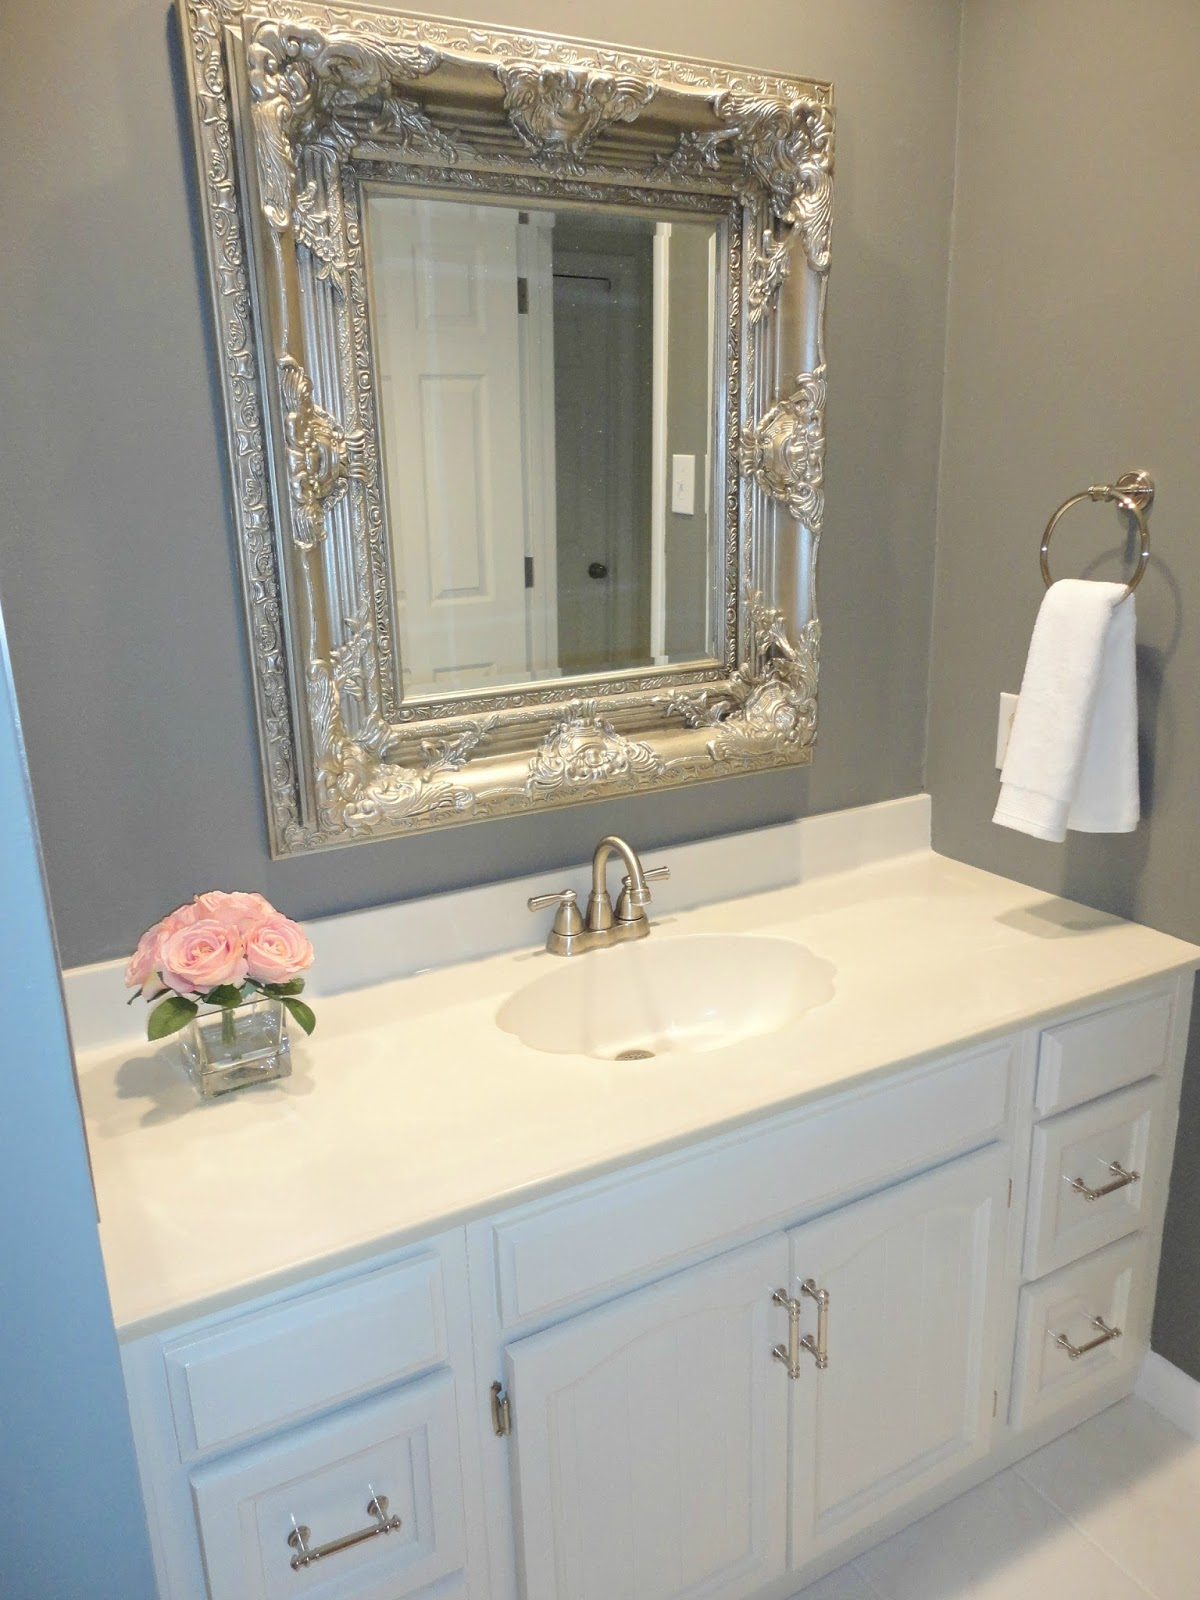 Lovely DIY Bathroom Remodel on a Budget